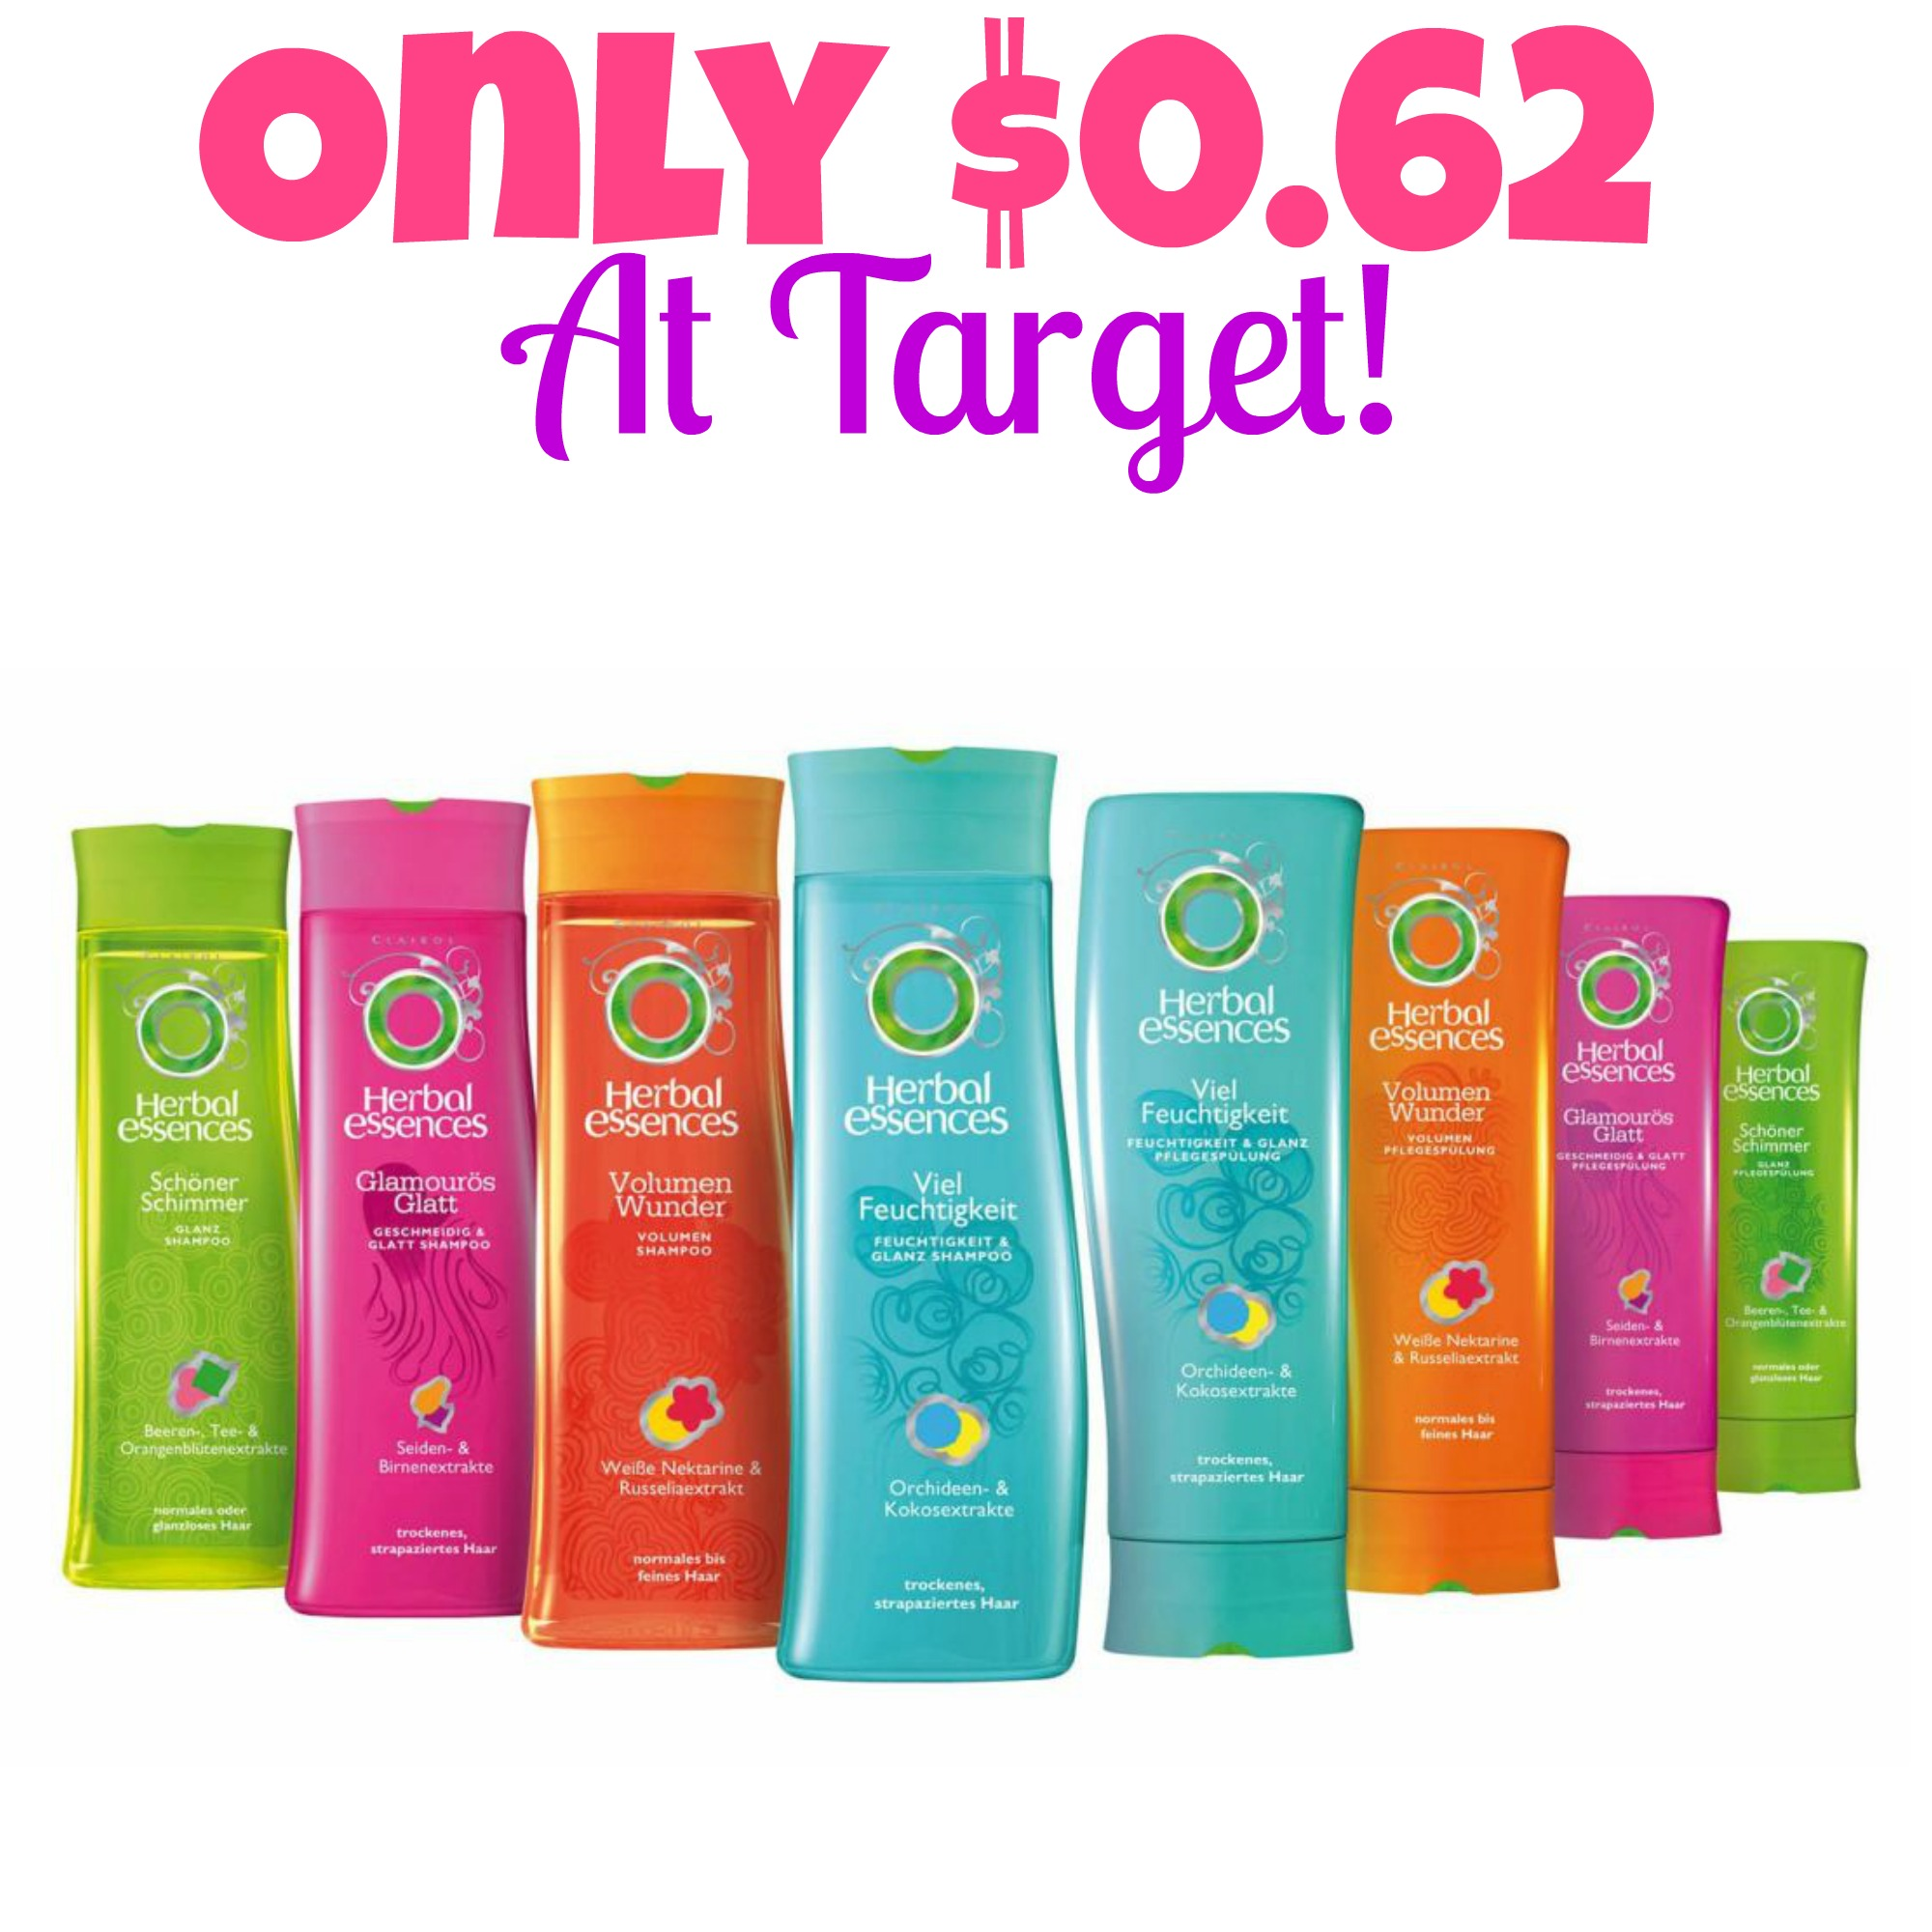 conditioner, hair care coupons, Hot Target Deals, HOT! Herbal Essences Only $0.62 At Target! (Starts 9/21), Shampoo, Stock up Prices at Target